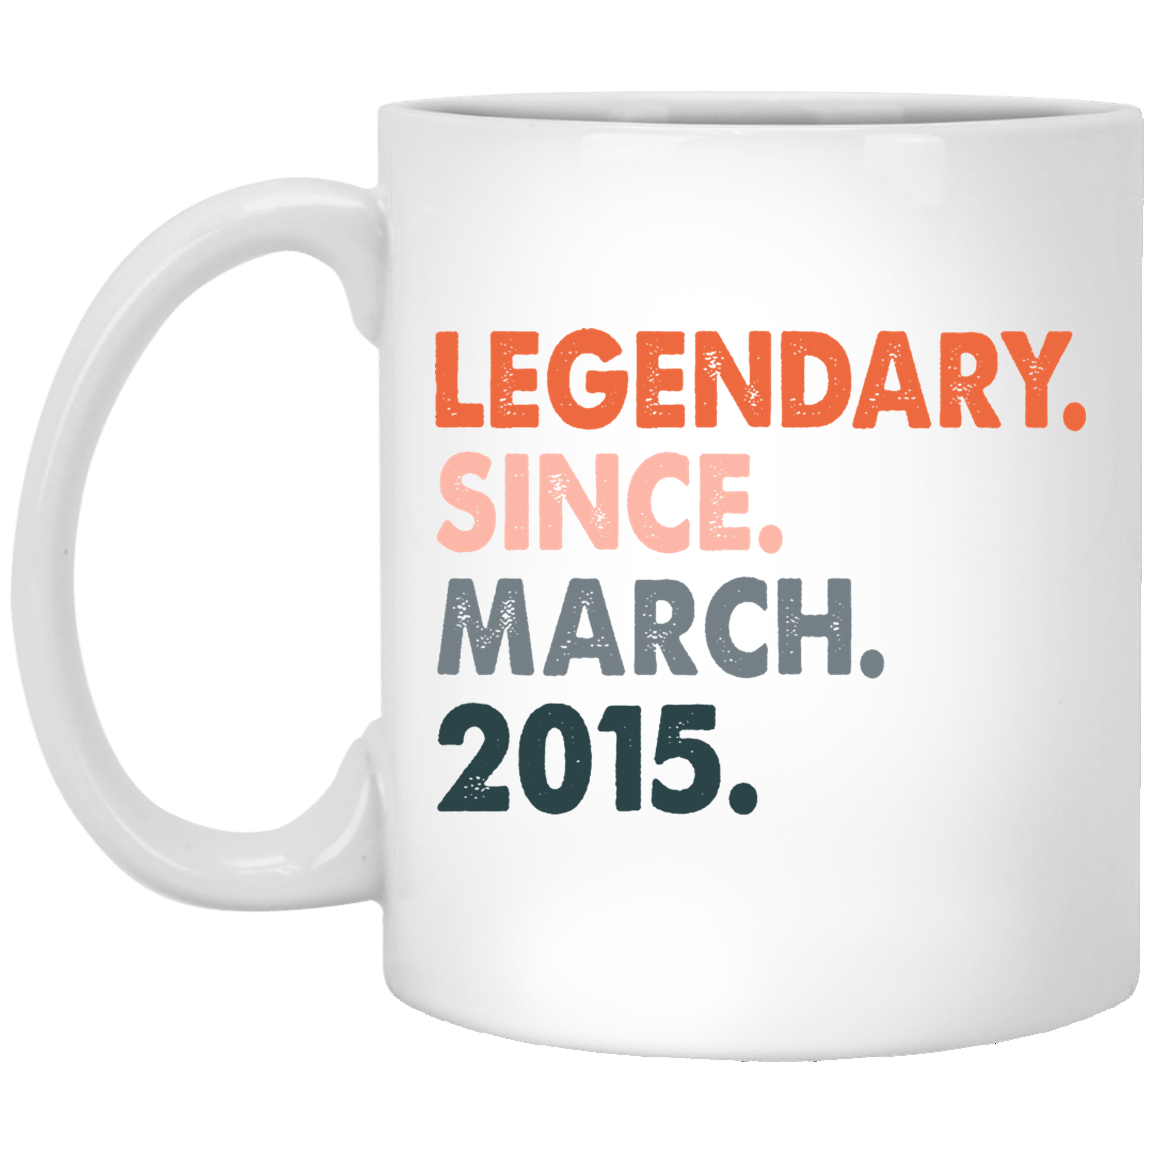 6th-Birthday-Ideas-for-Women-and-Men-Legendary-Since-March-2015 Funny Quotes Coffee Mug 99promocode